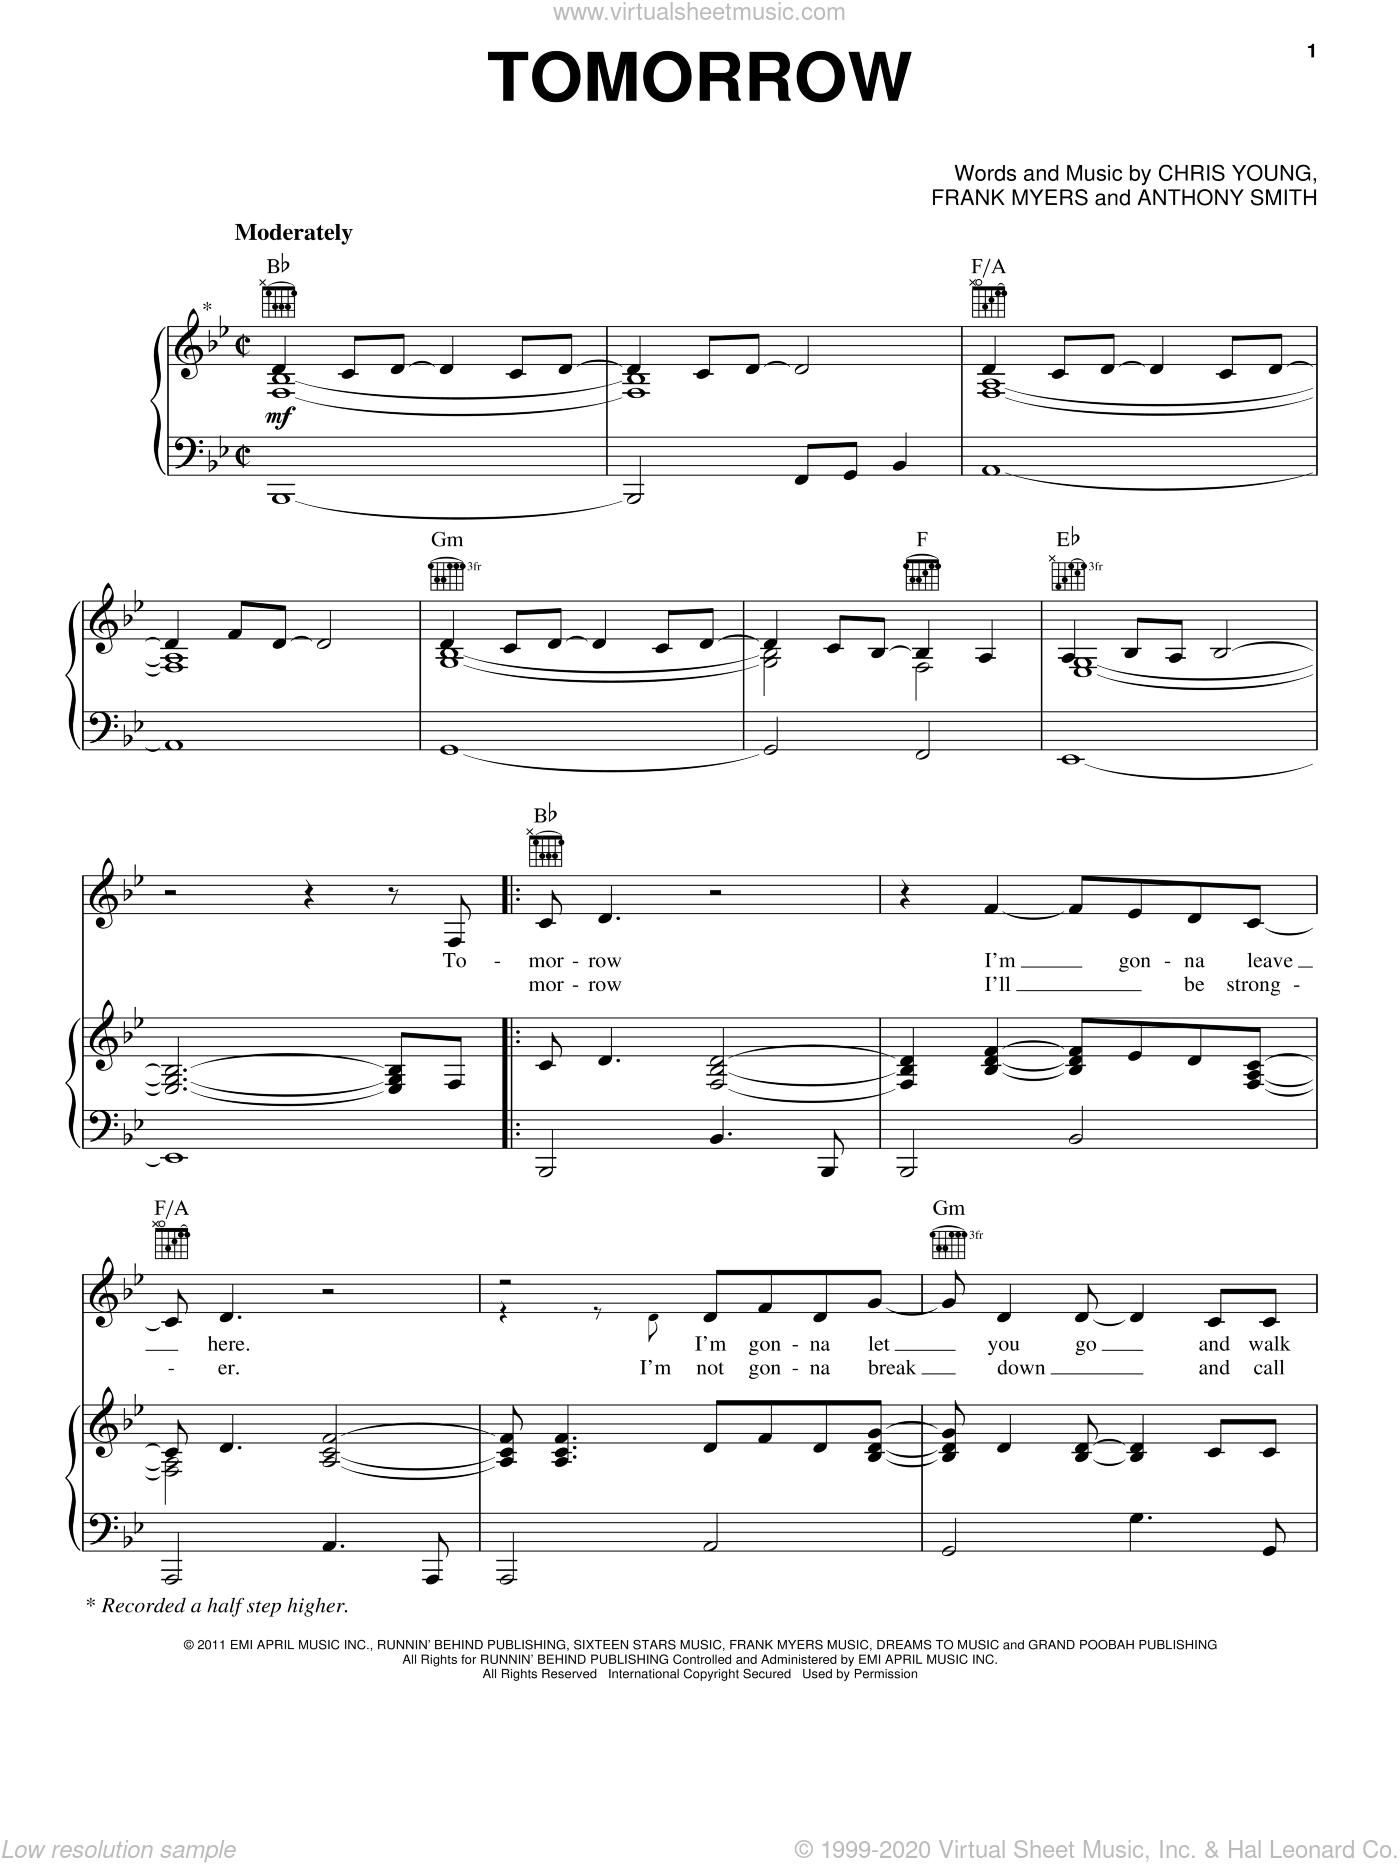 Tomorrow sheet music for voice, piano or guitar by Frank Myers